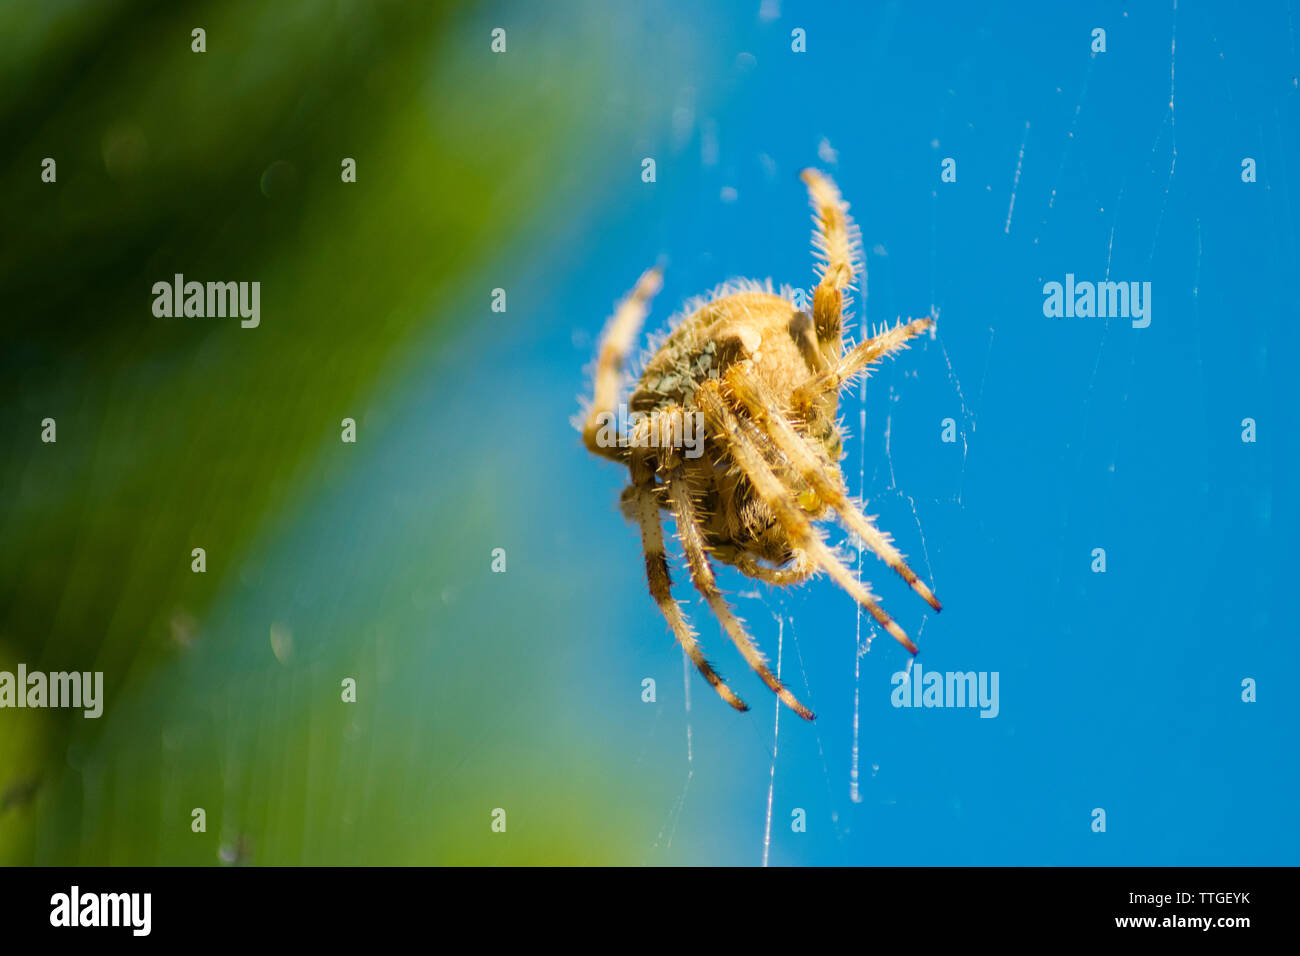 Araneus angulatus Spider on web - Stock Image